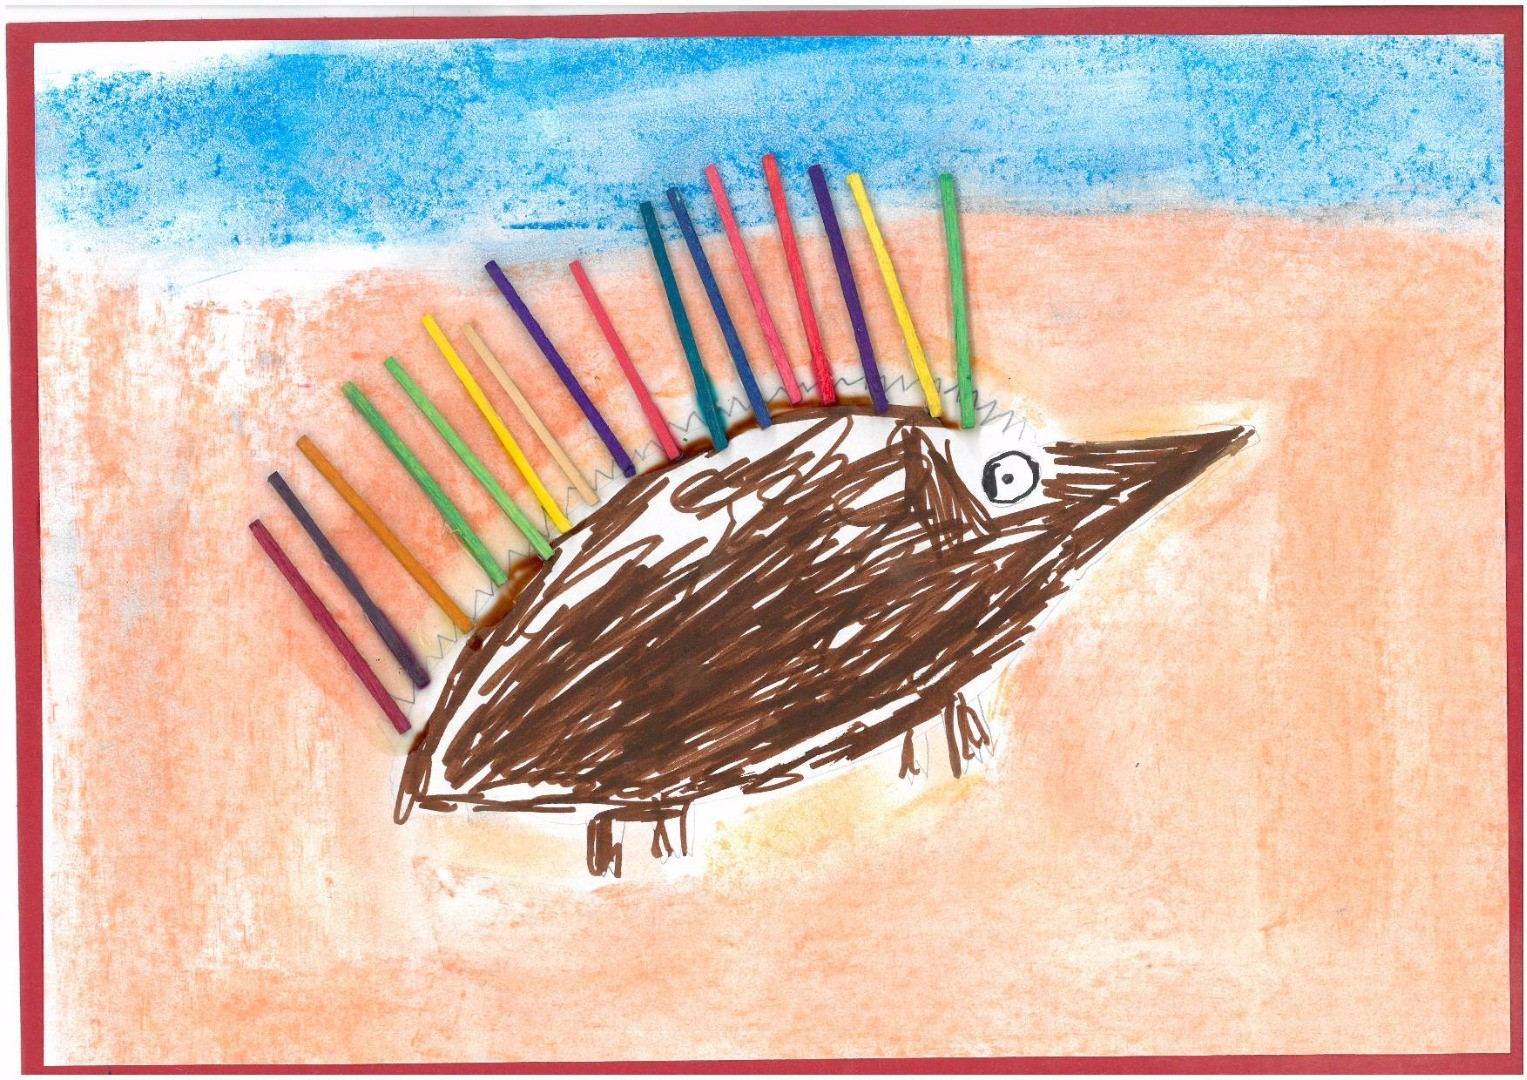 2017 Celebrate Australia Primary School Art Competition Second Place Section One: Echidna in the Desert by Noah Coster